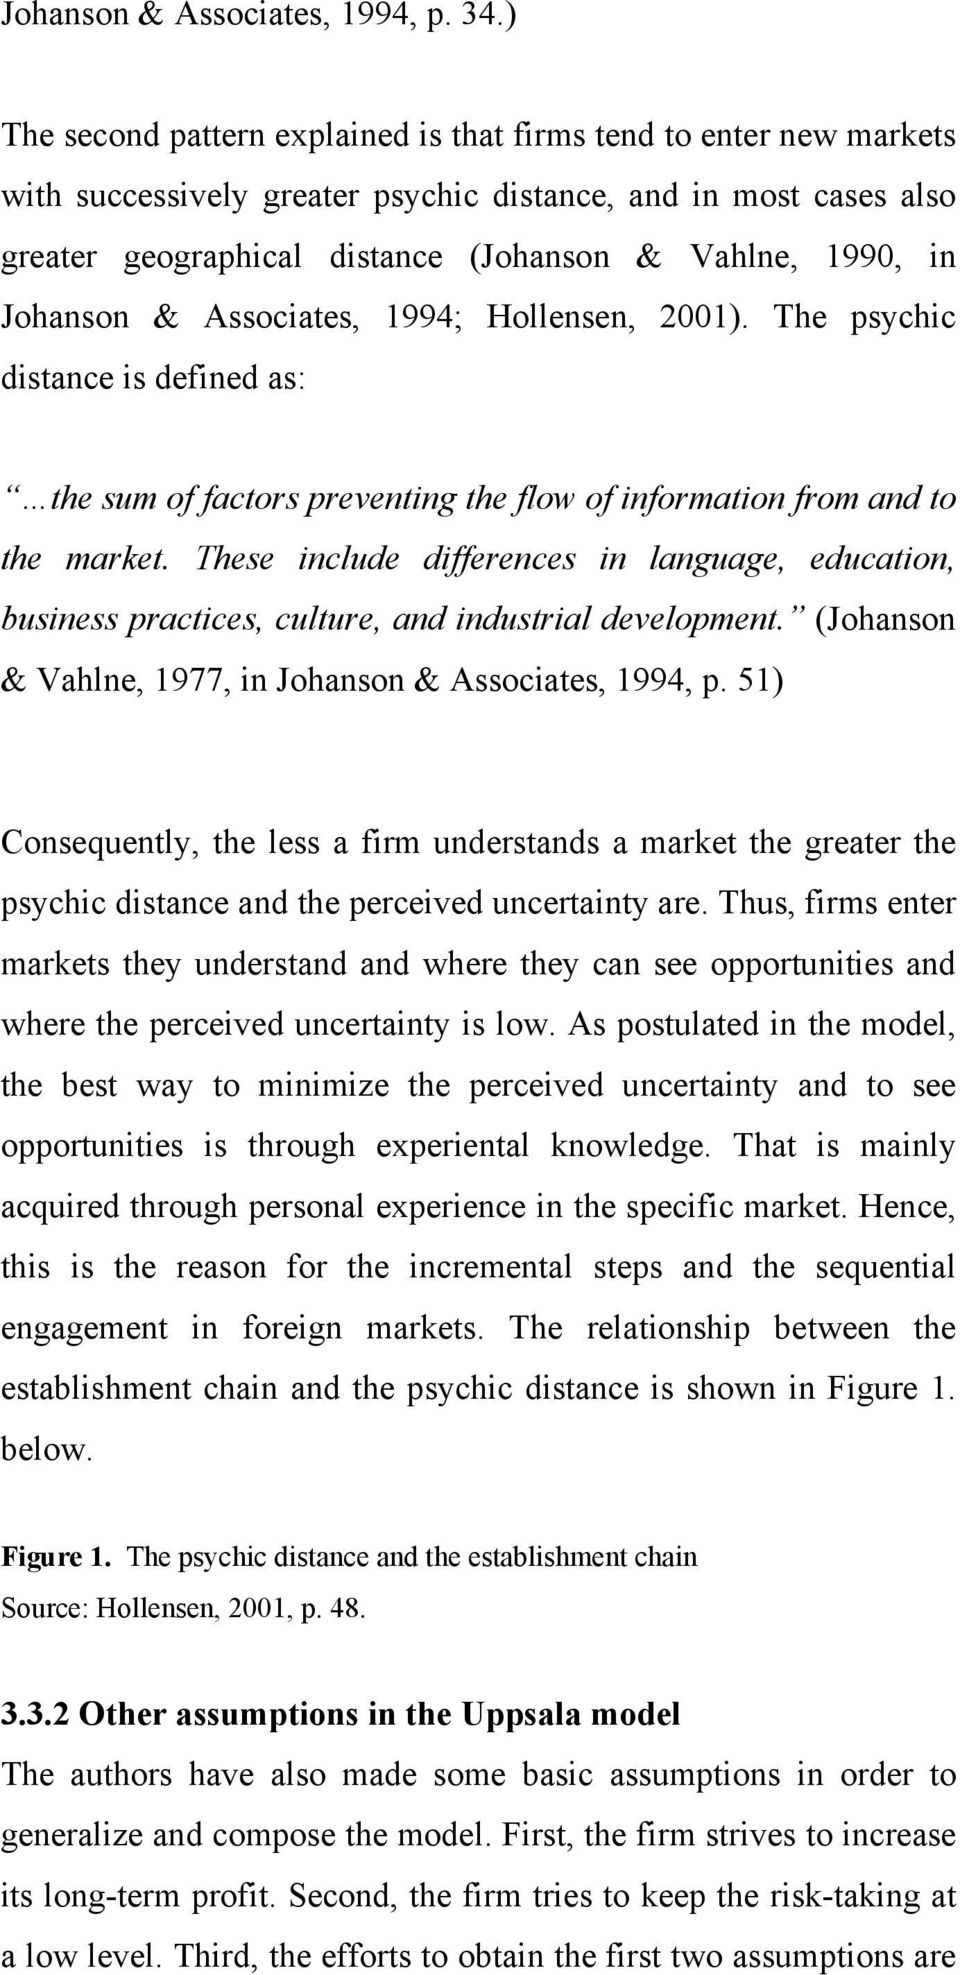 Johanson & Associates, 1994; Hollensen, 2001). The psychic distance is defined as: the sum of factors preventing the flow of information from and to the market.